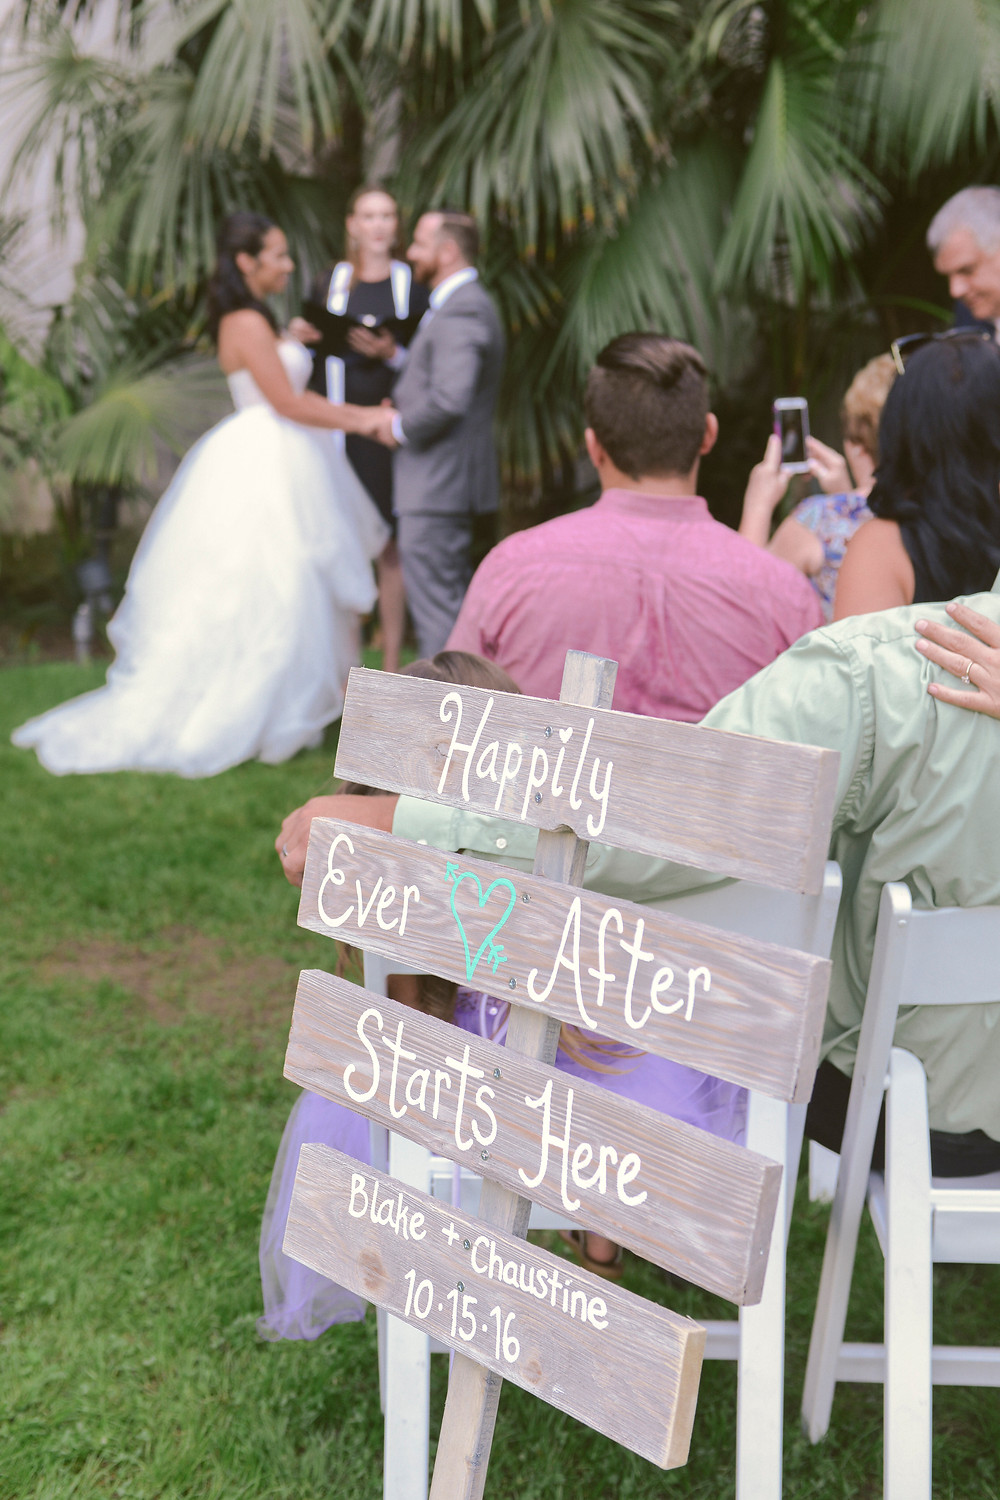 Happily Ever After Starts Here Sign Photo By ByCherry Photography